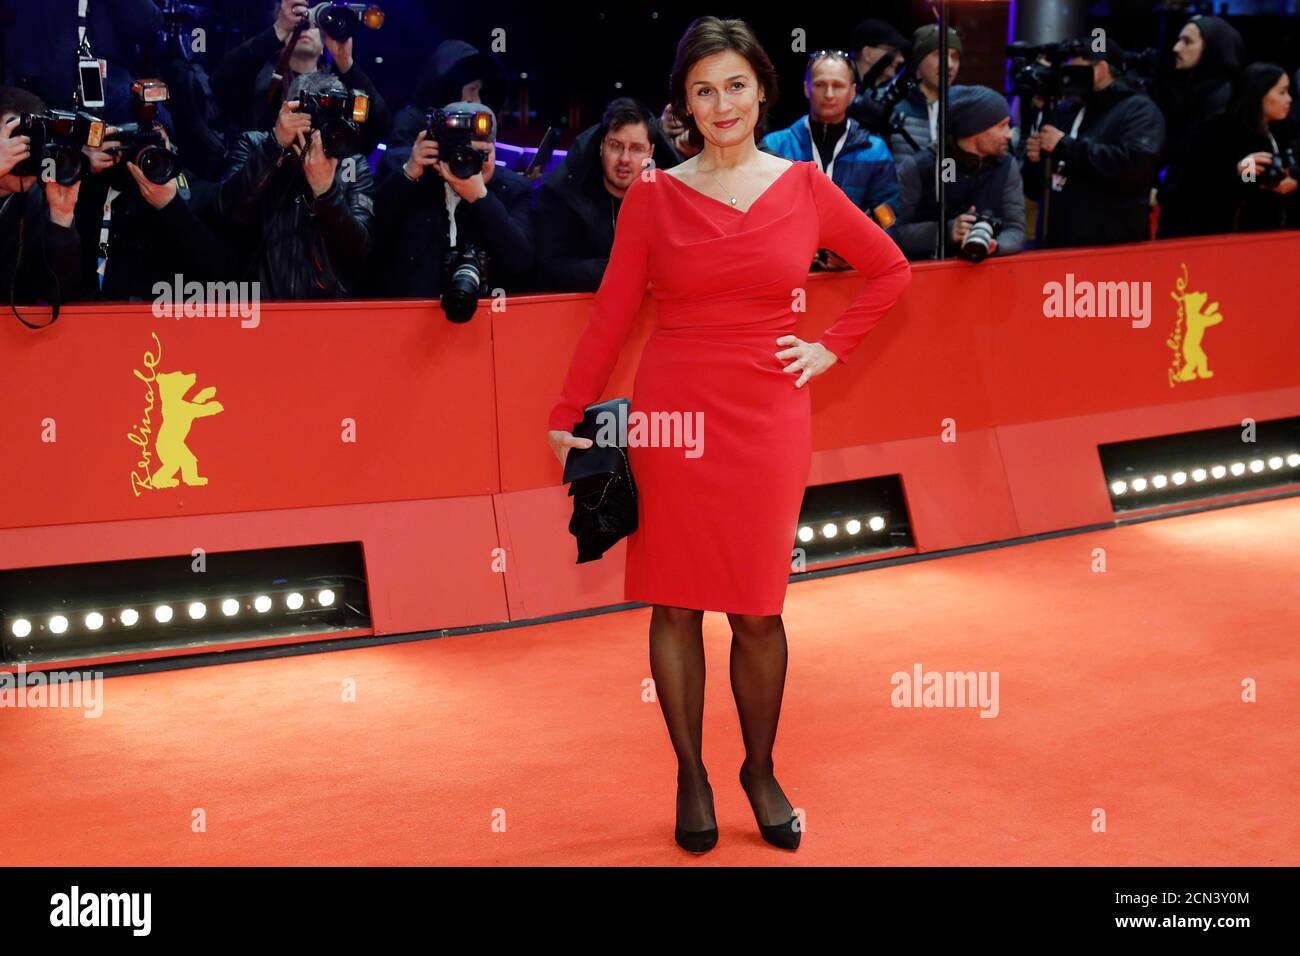 Sandra Maischberger poses on the red carpet as she arrives for the award ceremony of the 70th Berlinale International Film Festival in Berlin, Germany, February 29, 2020. REUTERS/Michele Tantussi Stock Photo